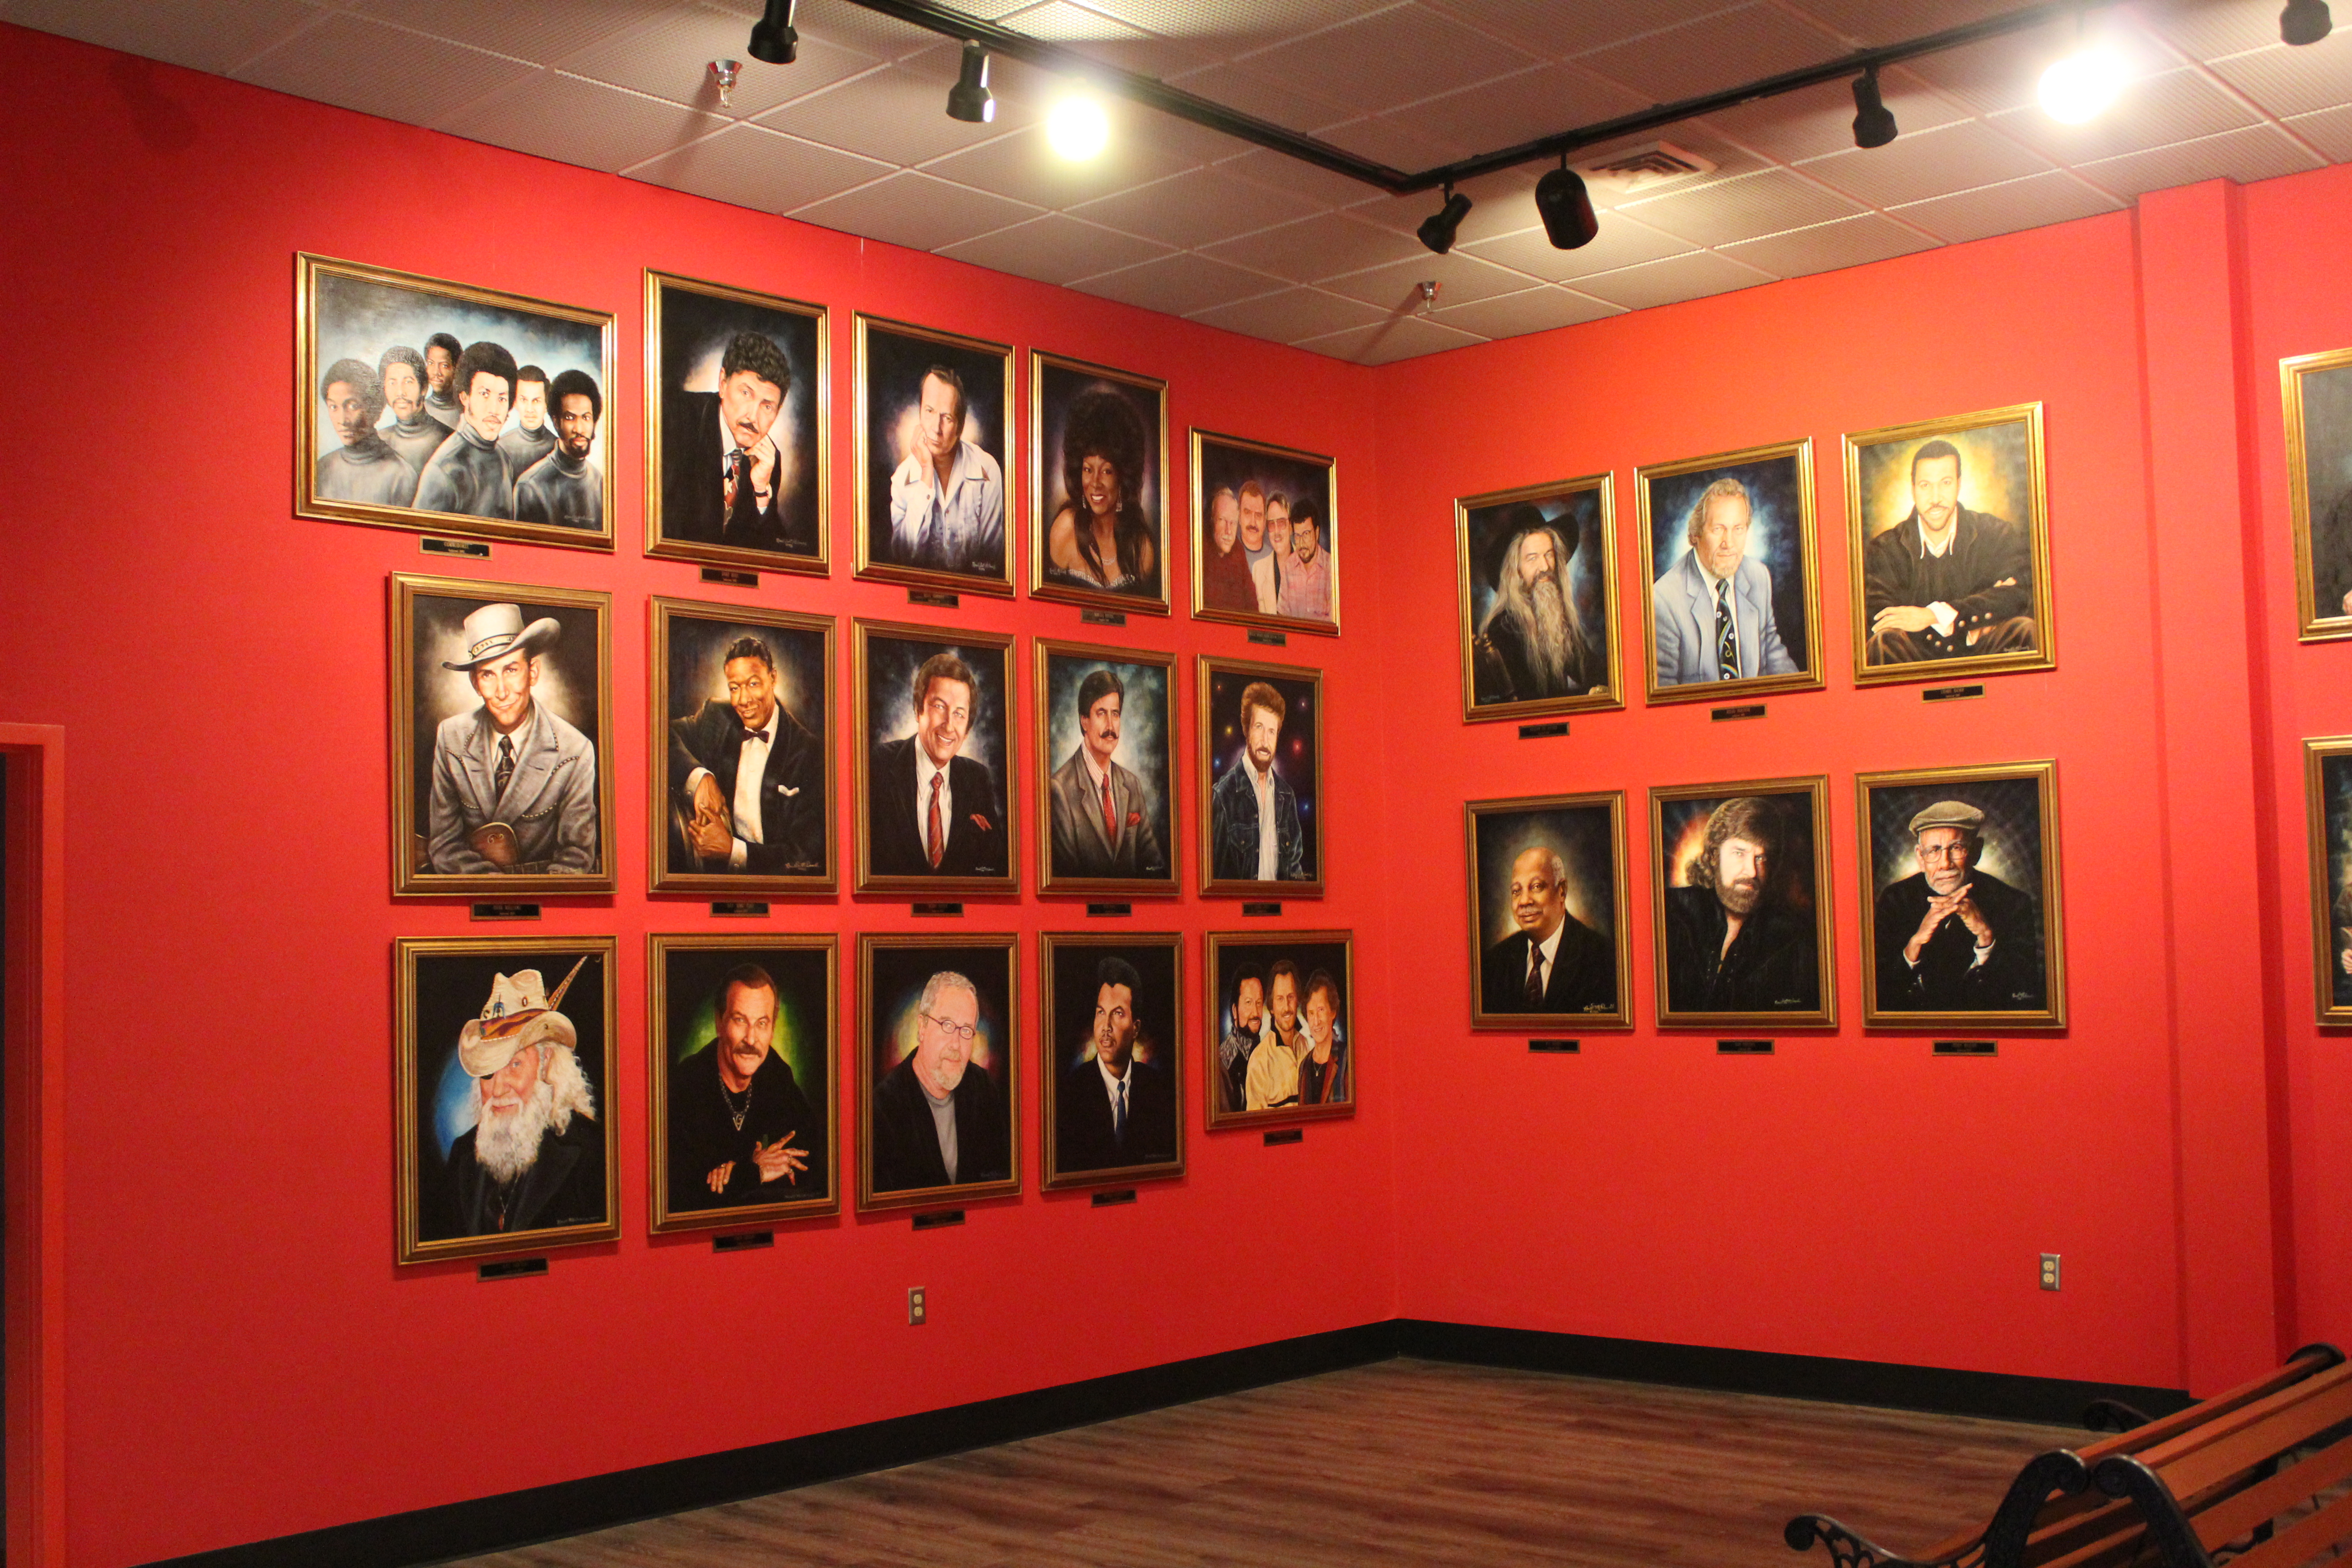 The Alabama Music Hall of Fame in Florence, Alabam